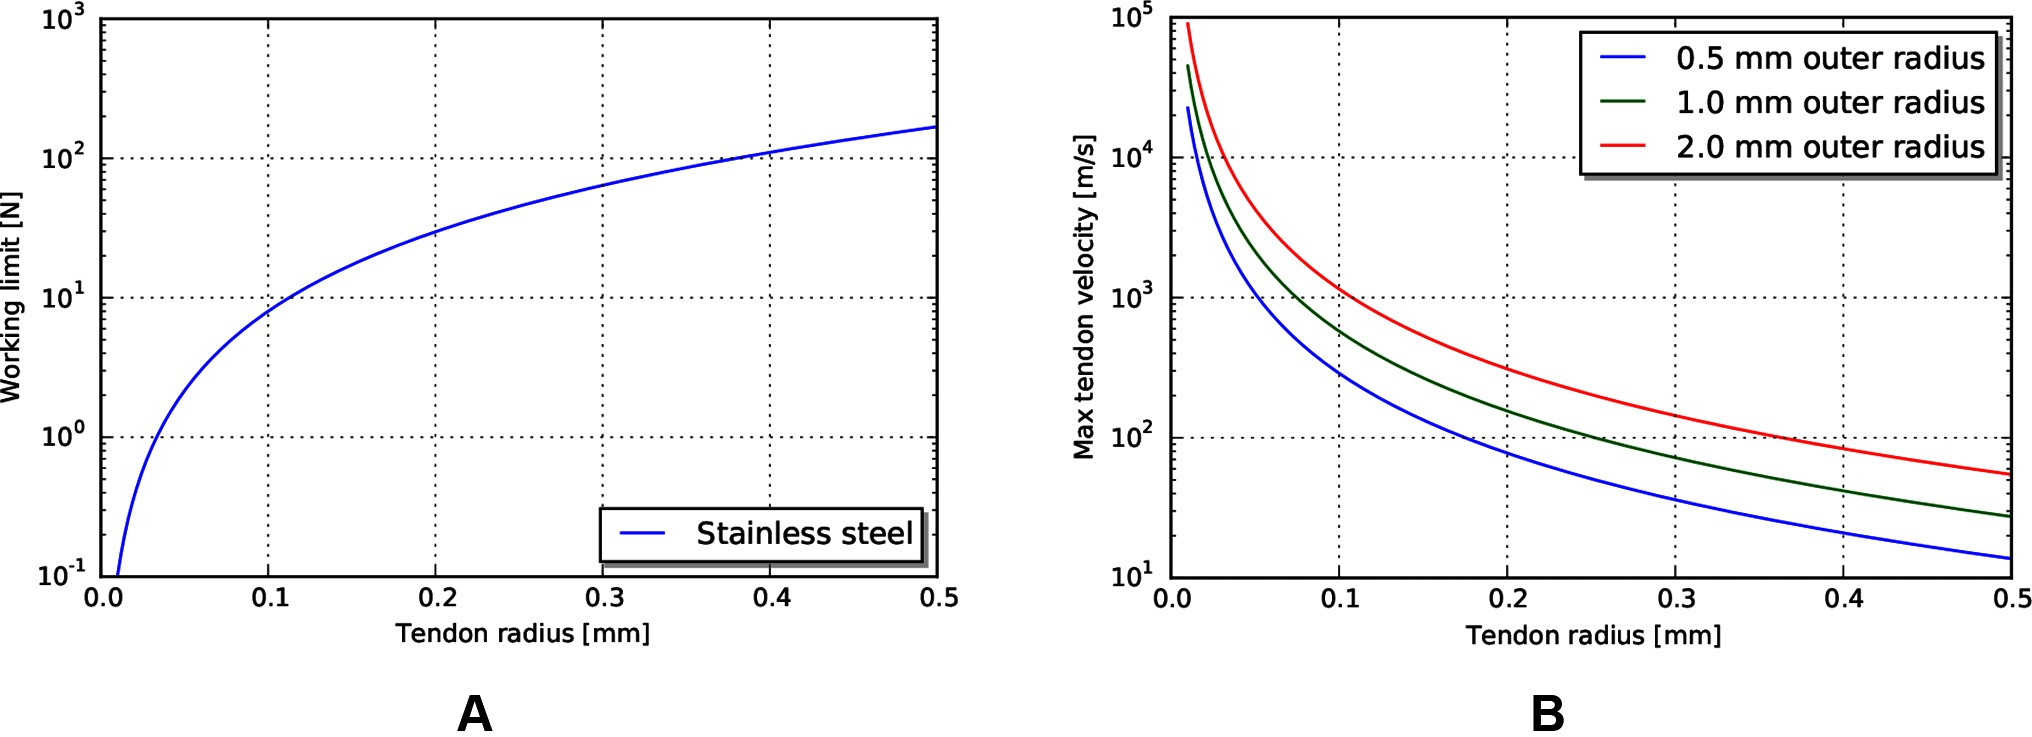 Frontiers Efficiency And Power Limits Of Electrical Tendon Heating Tape Structure Google Patentes On Wiring Heat In Series